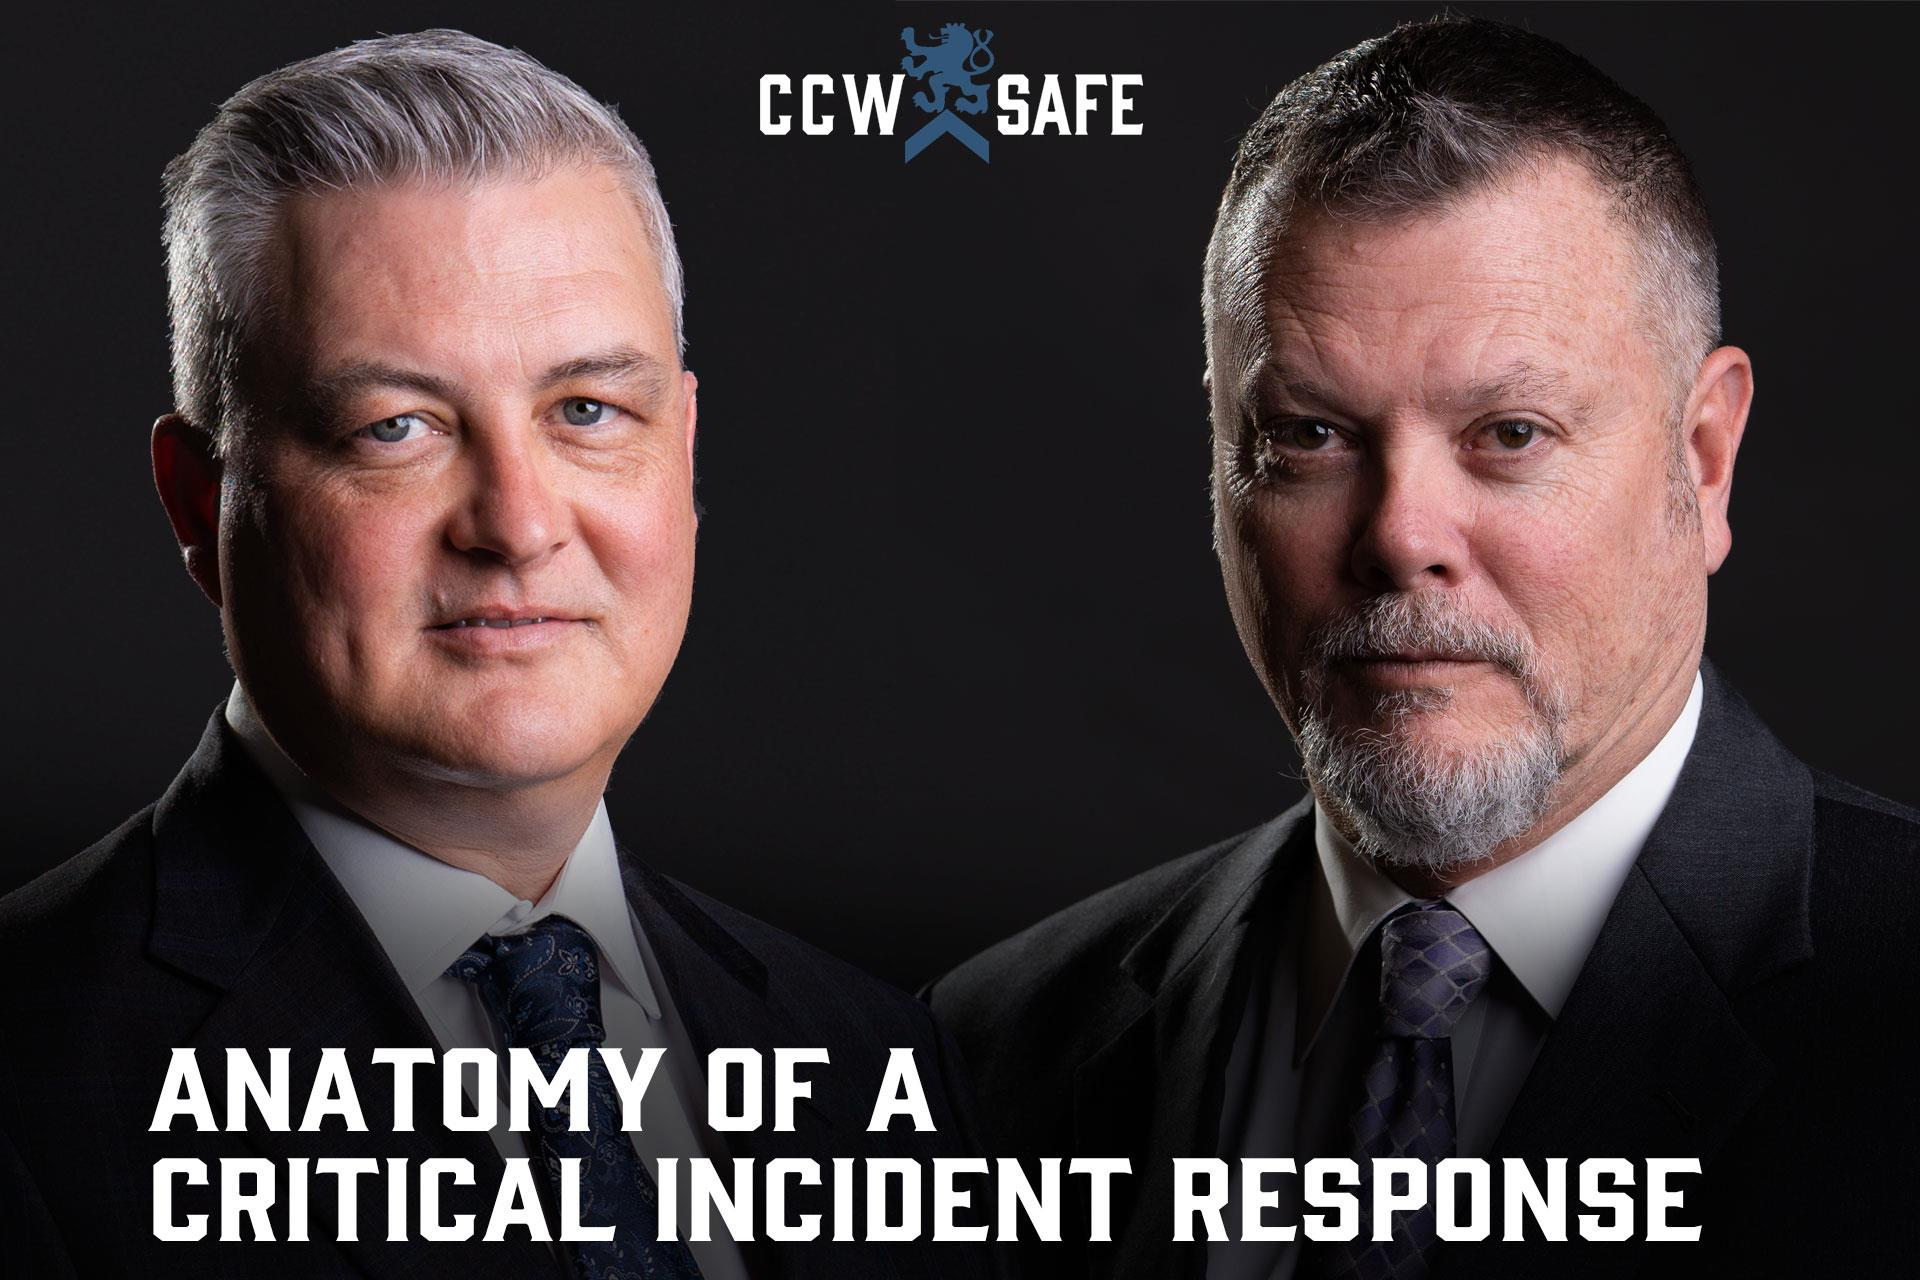 VIDEO: Anatomy of a Critical Incident Response